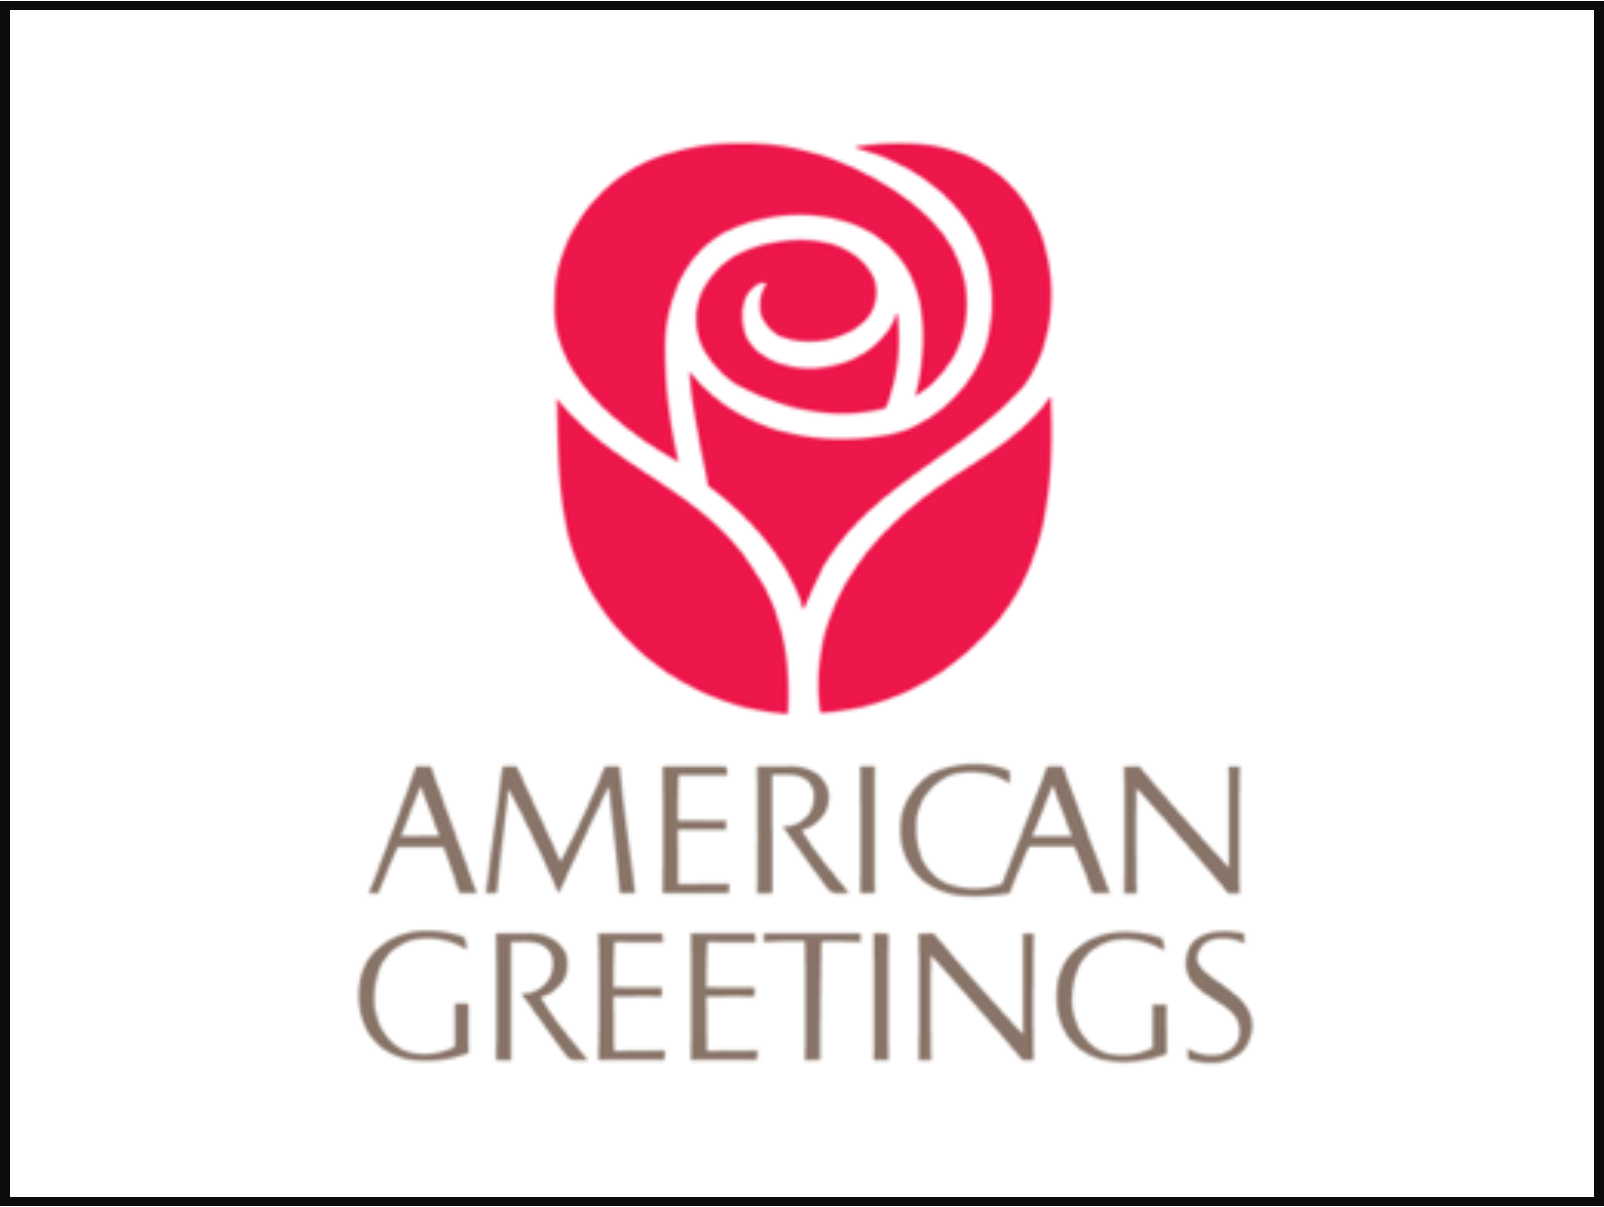 American Greetings Png - CD&R to Acquire American Greetings - Private Equity Professional